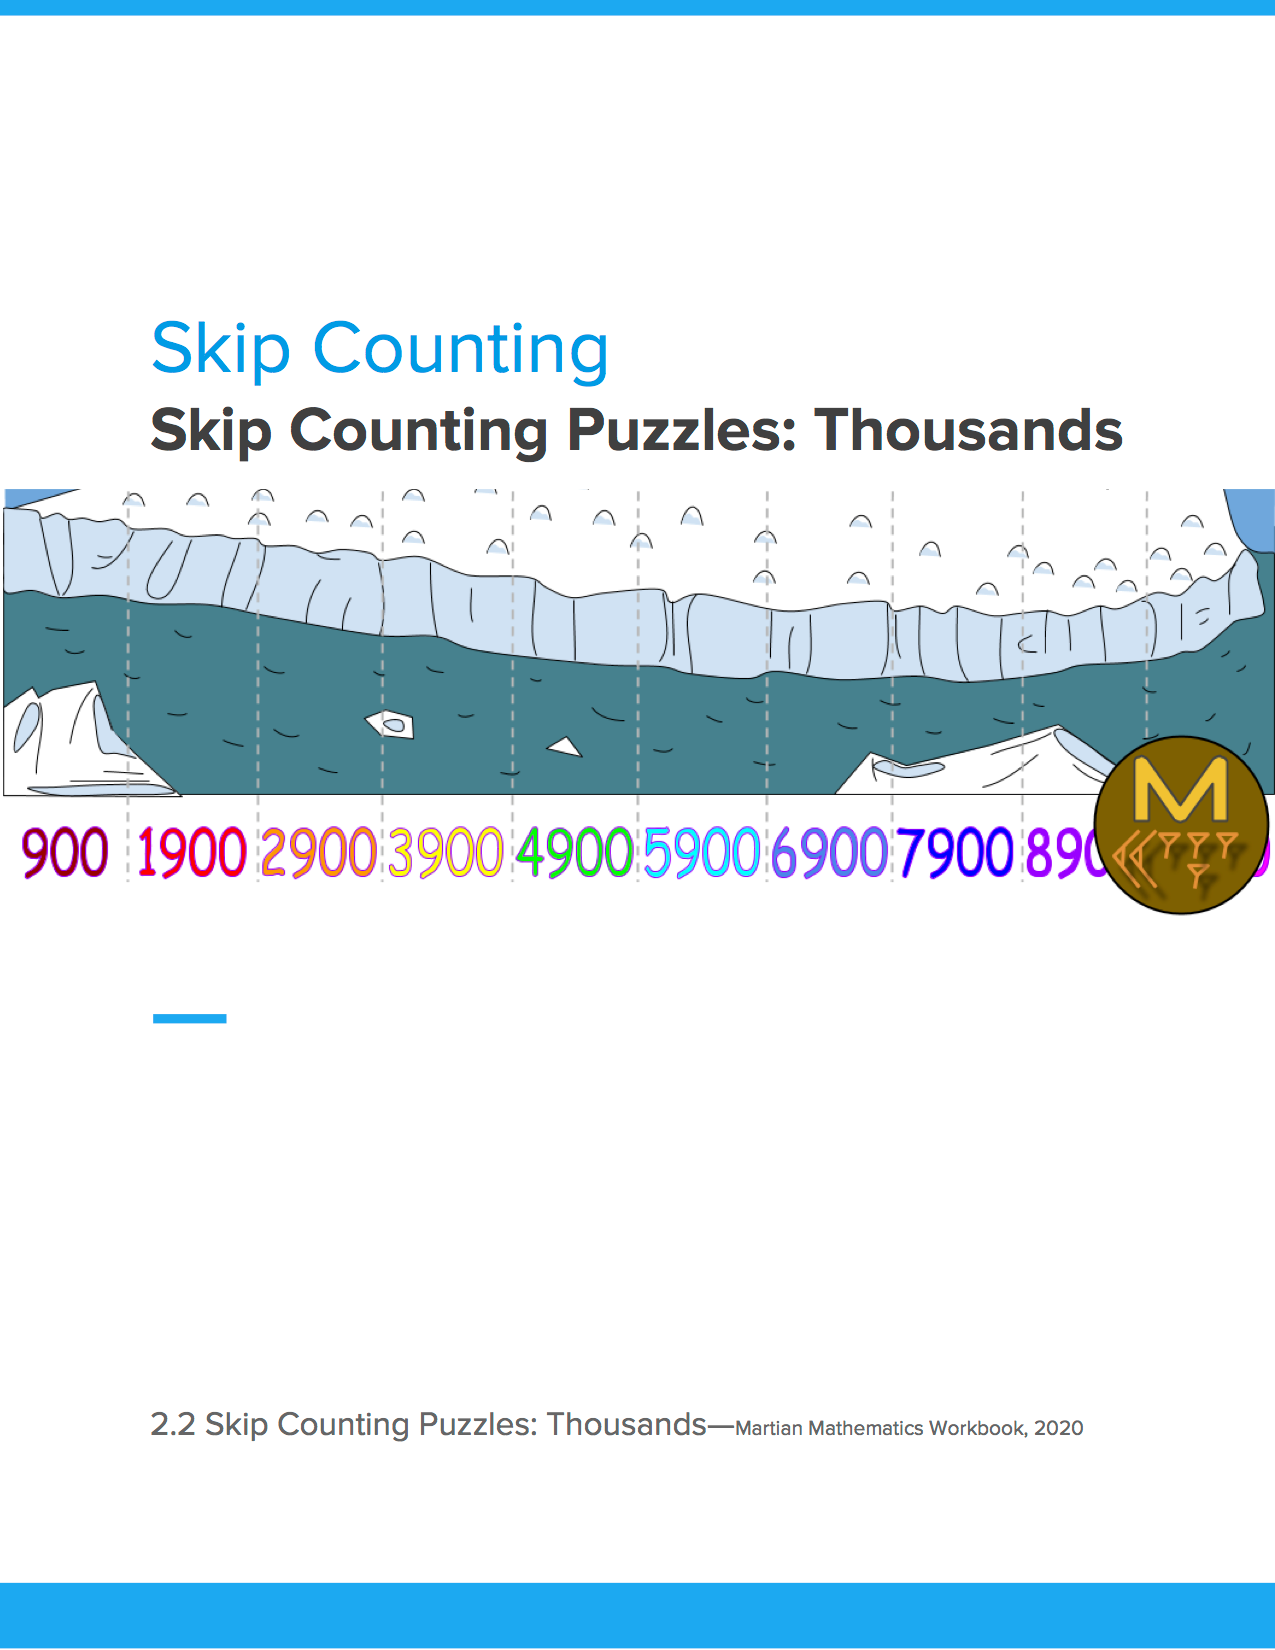 Skip Counting Puzzles: Thousands